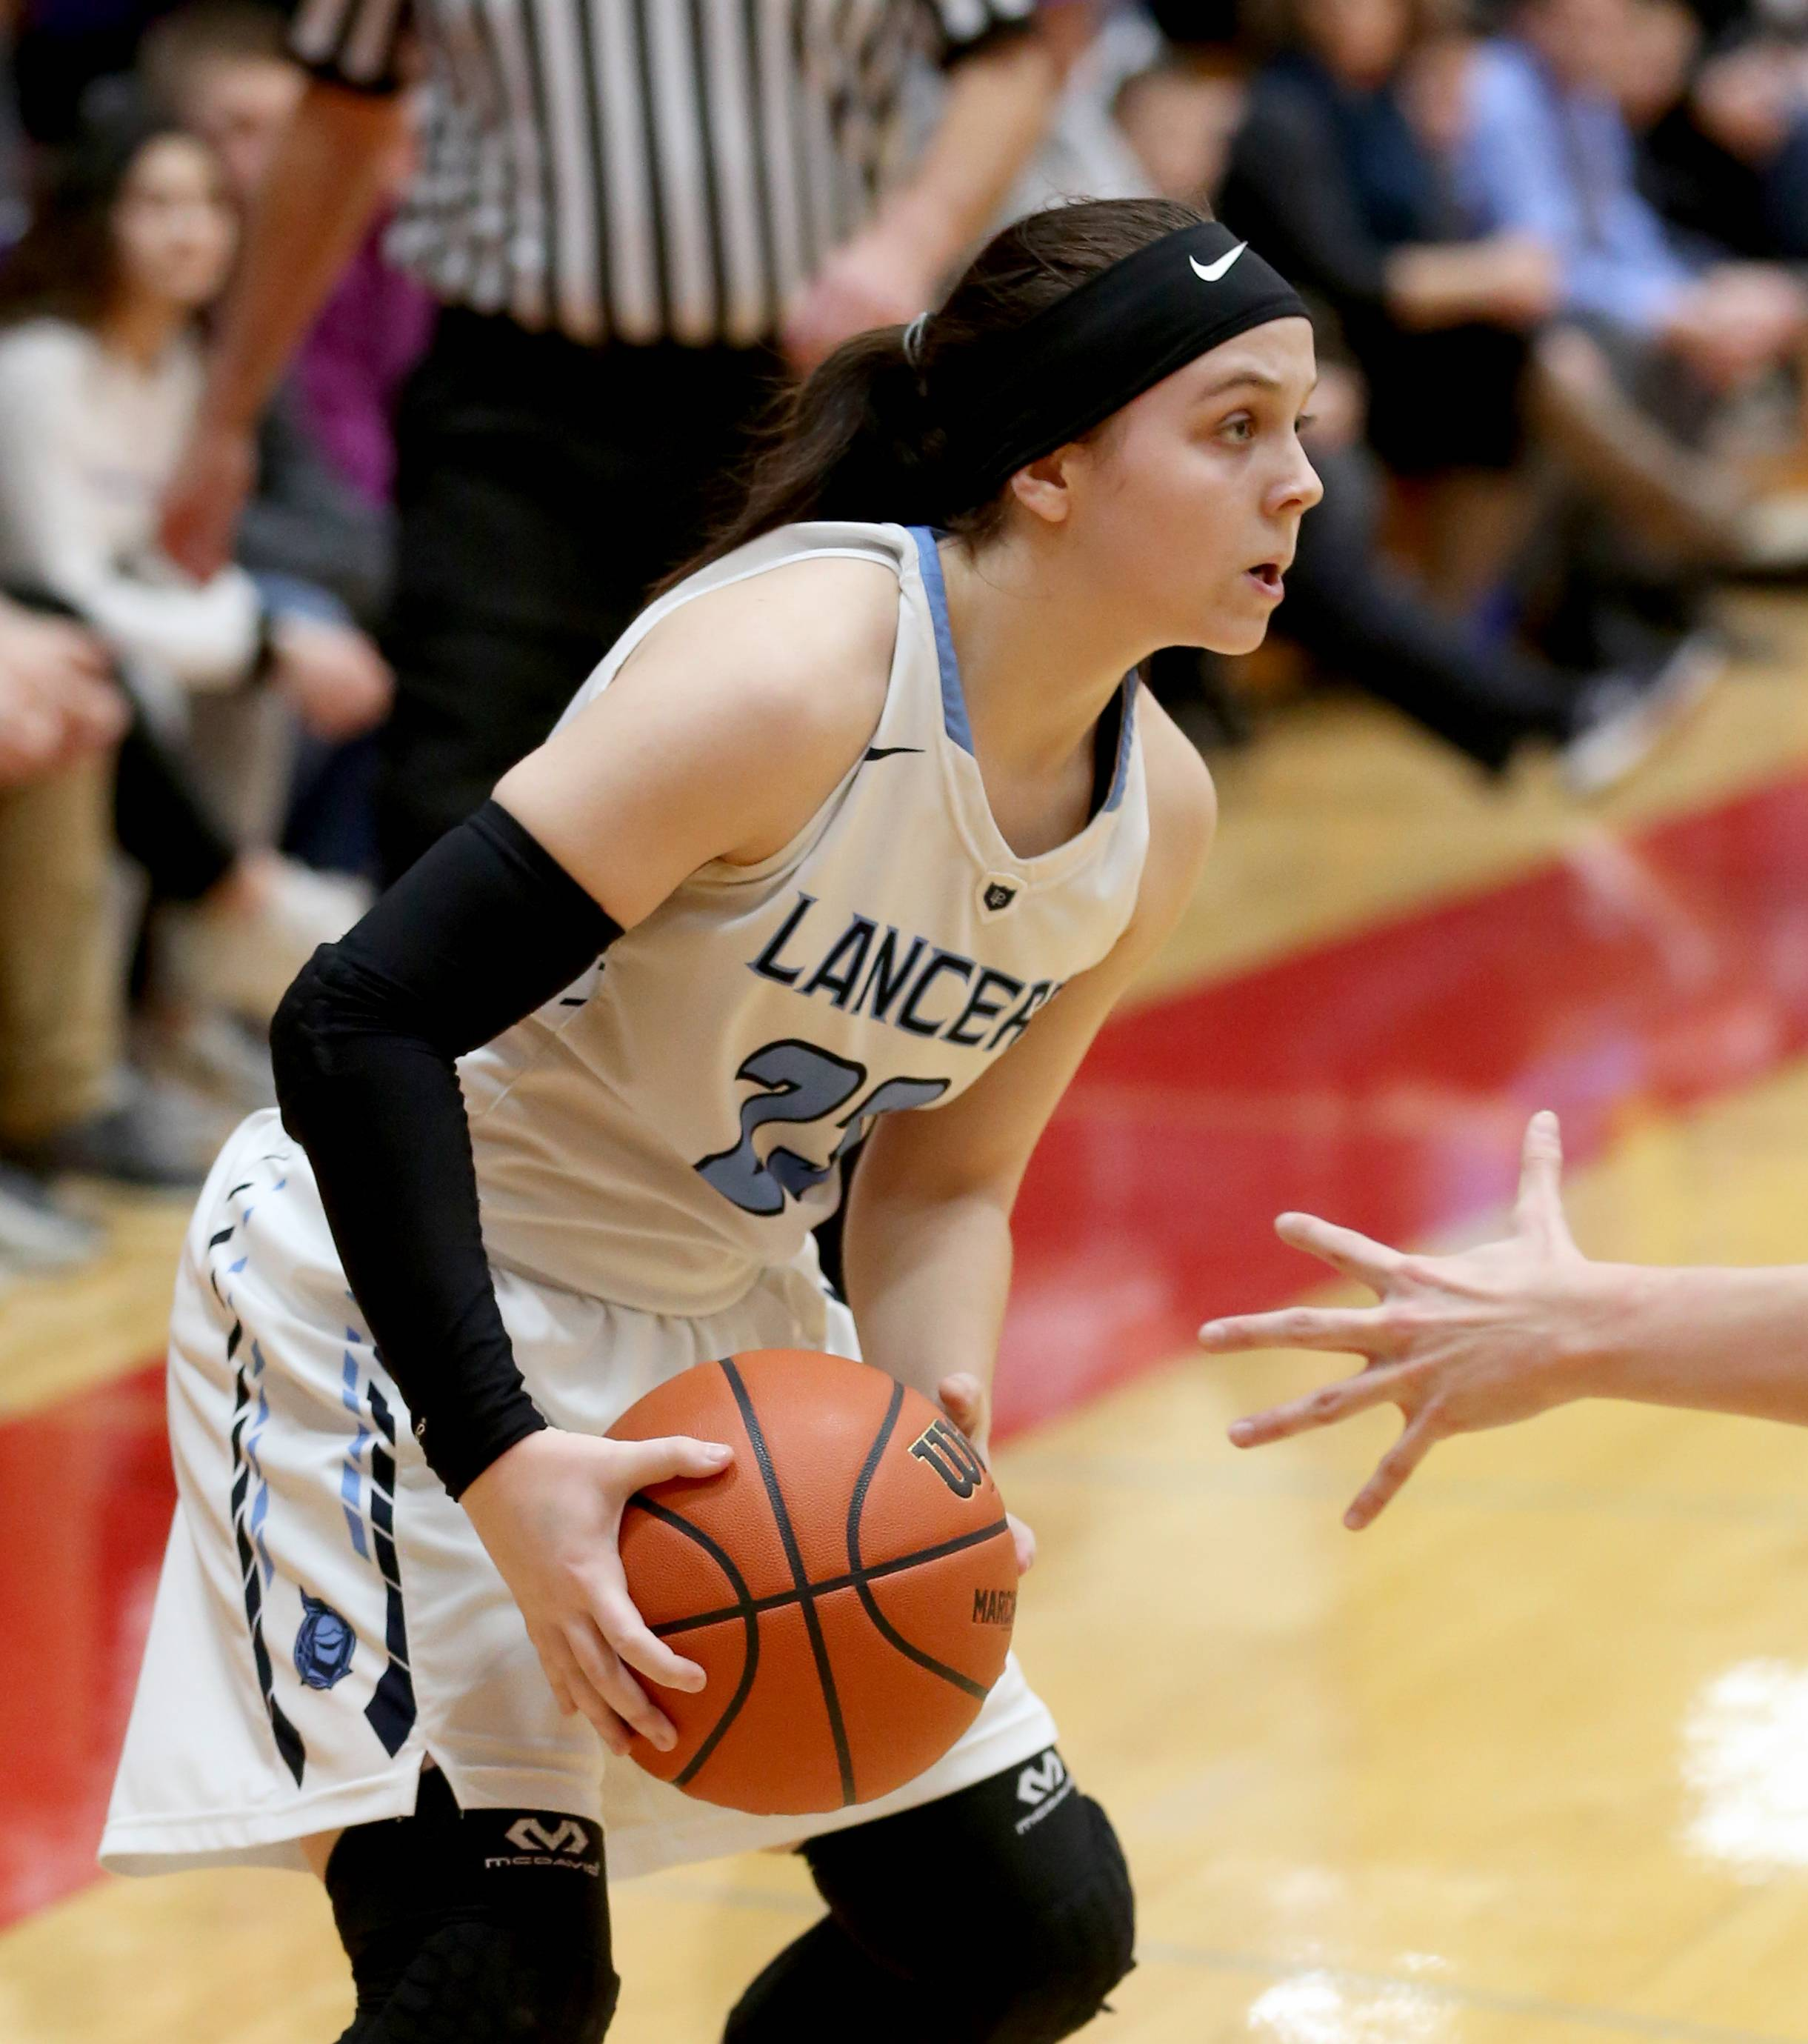 Lake Park's Casey Darre looks for an option against Wheaton Warrenville South during sectional semifinal girls basketball action at Batavia Monday night.